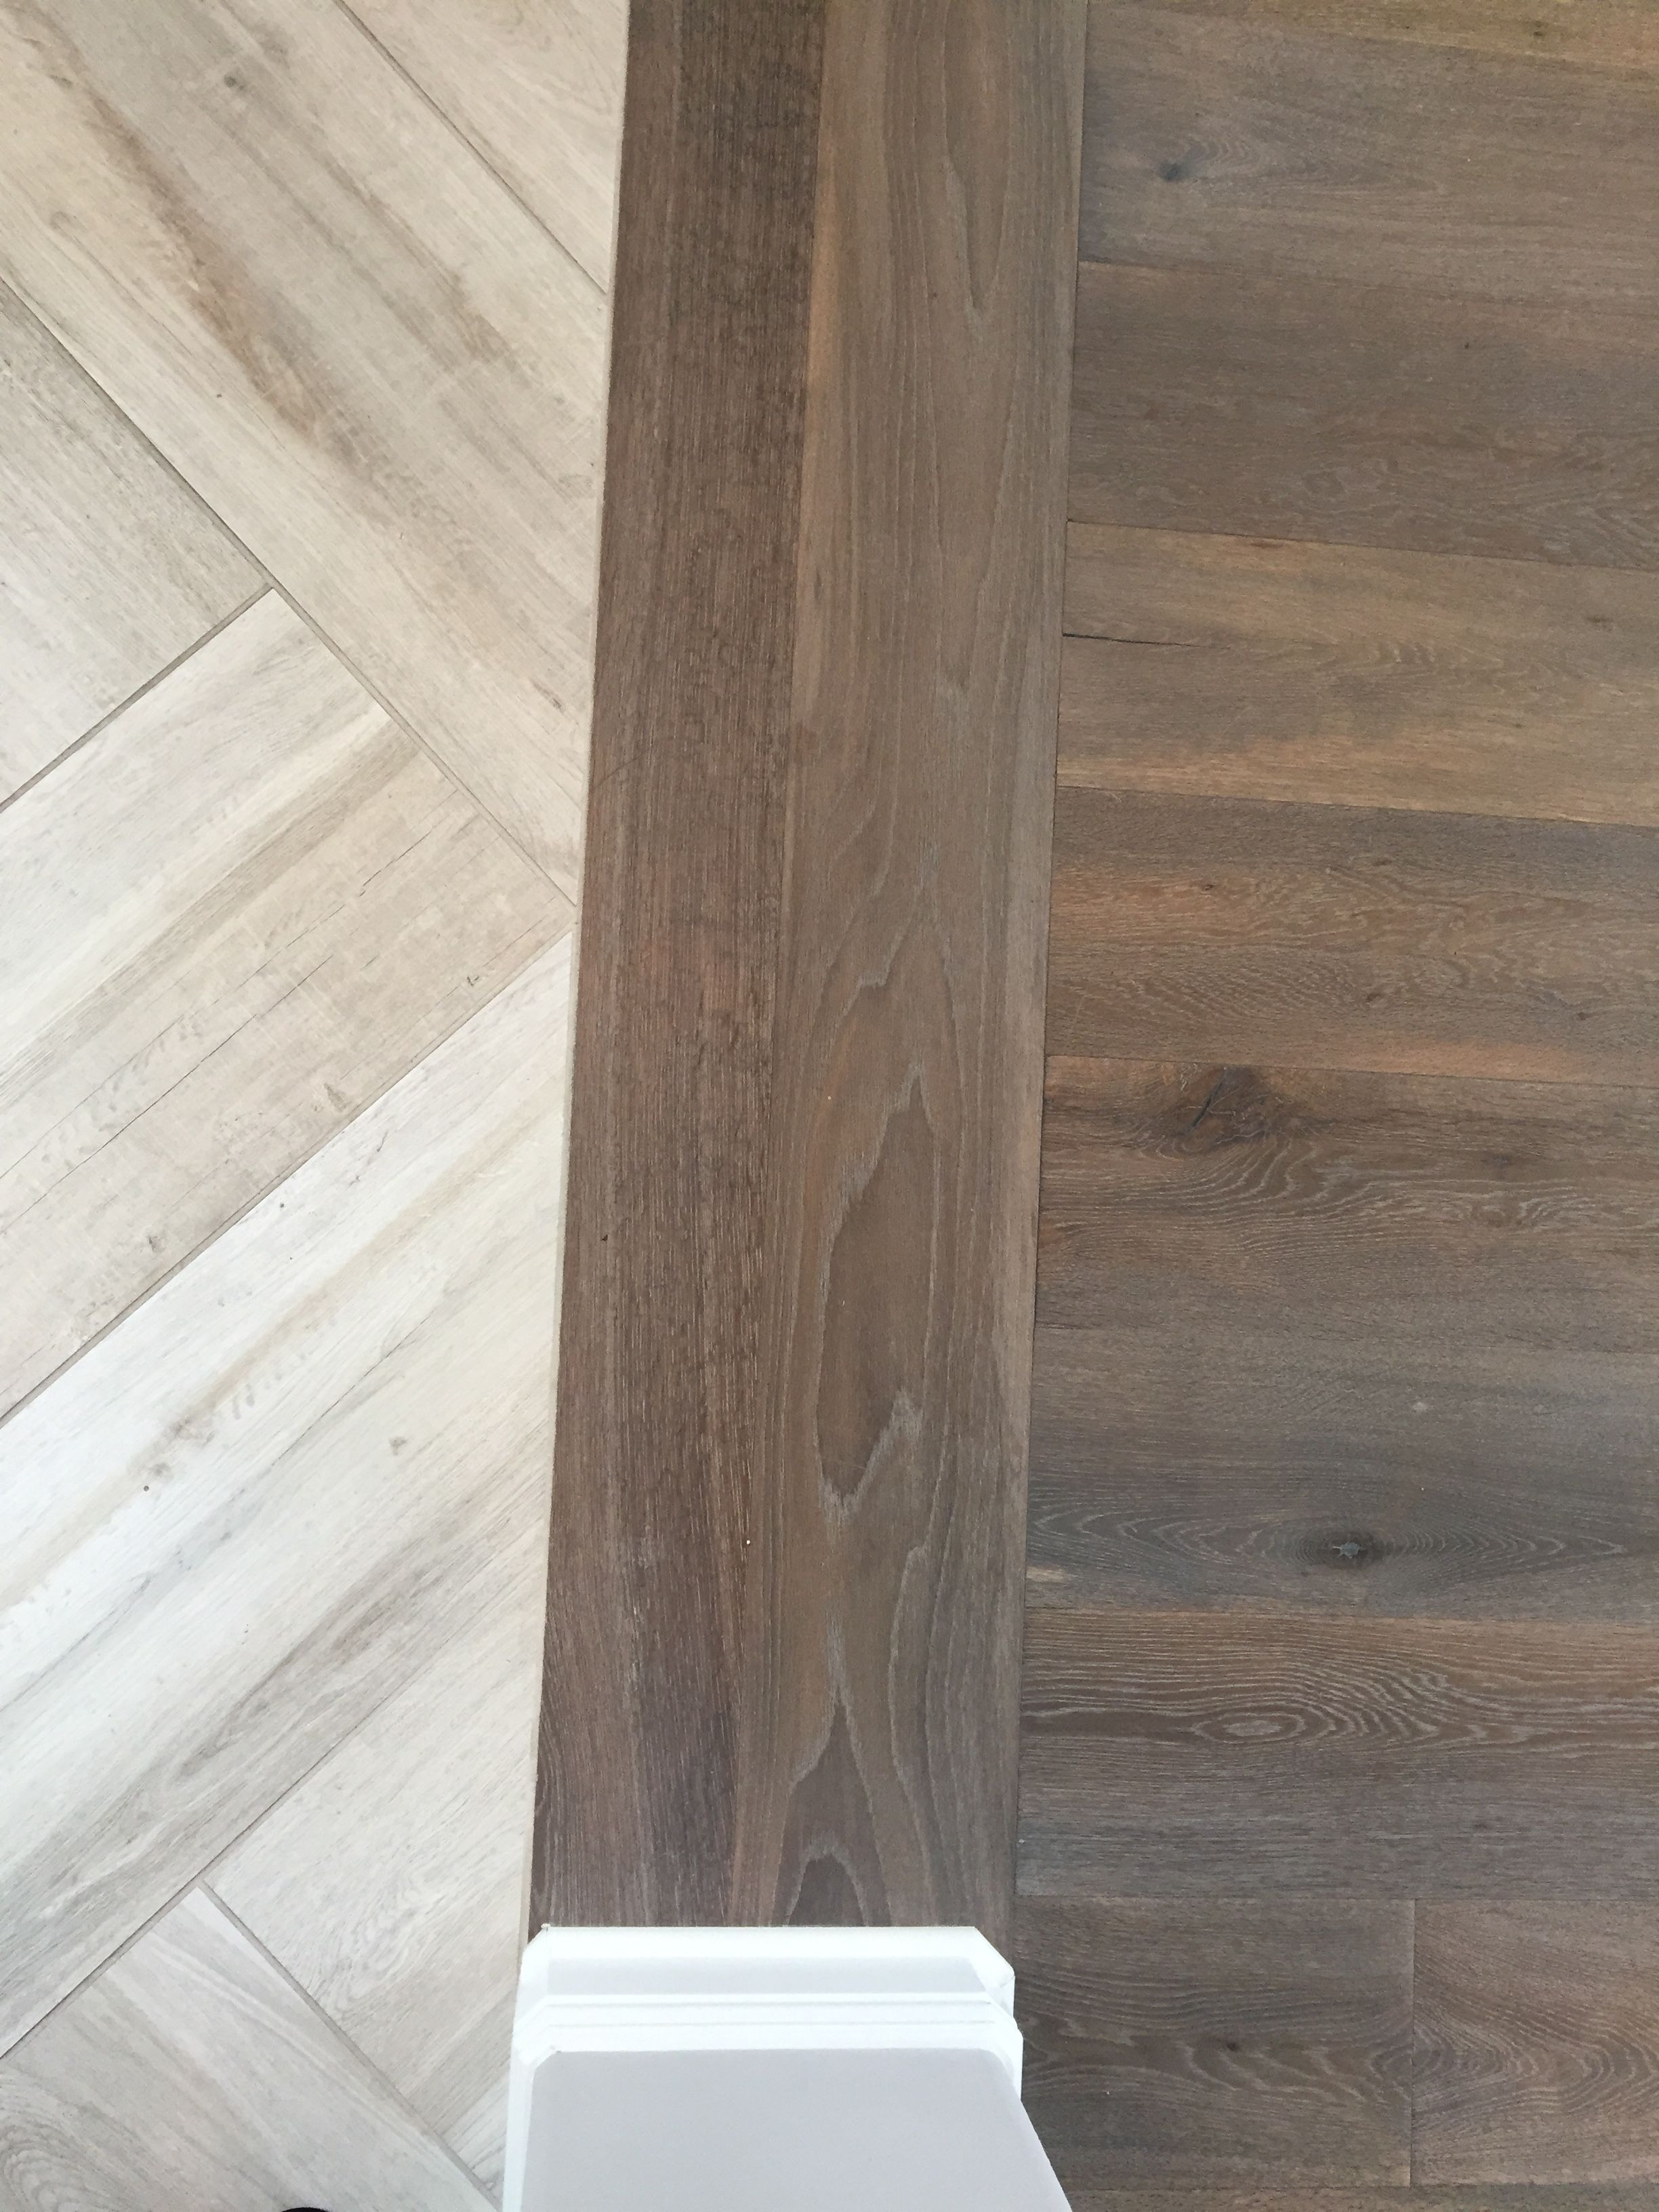 Hardwood Floor Sanding and Refinishing Near Me Of Floor Transition Laminate to Herringbone Tile Pattern Model Throughout Floor Transition Laminate to Herringbone Tile Pattern Herringbone Tile Pattern Herringbone Wood Floor